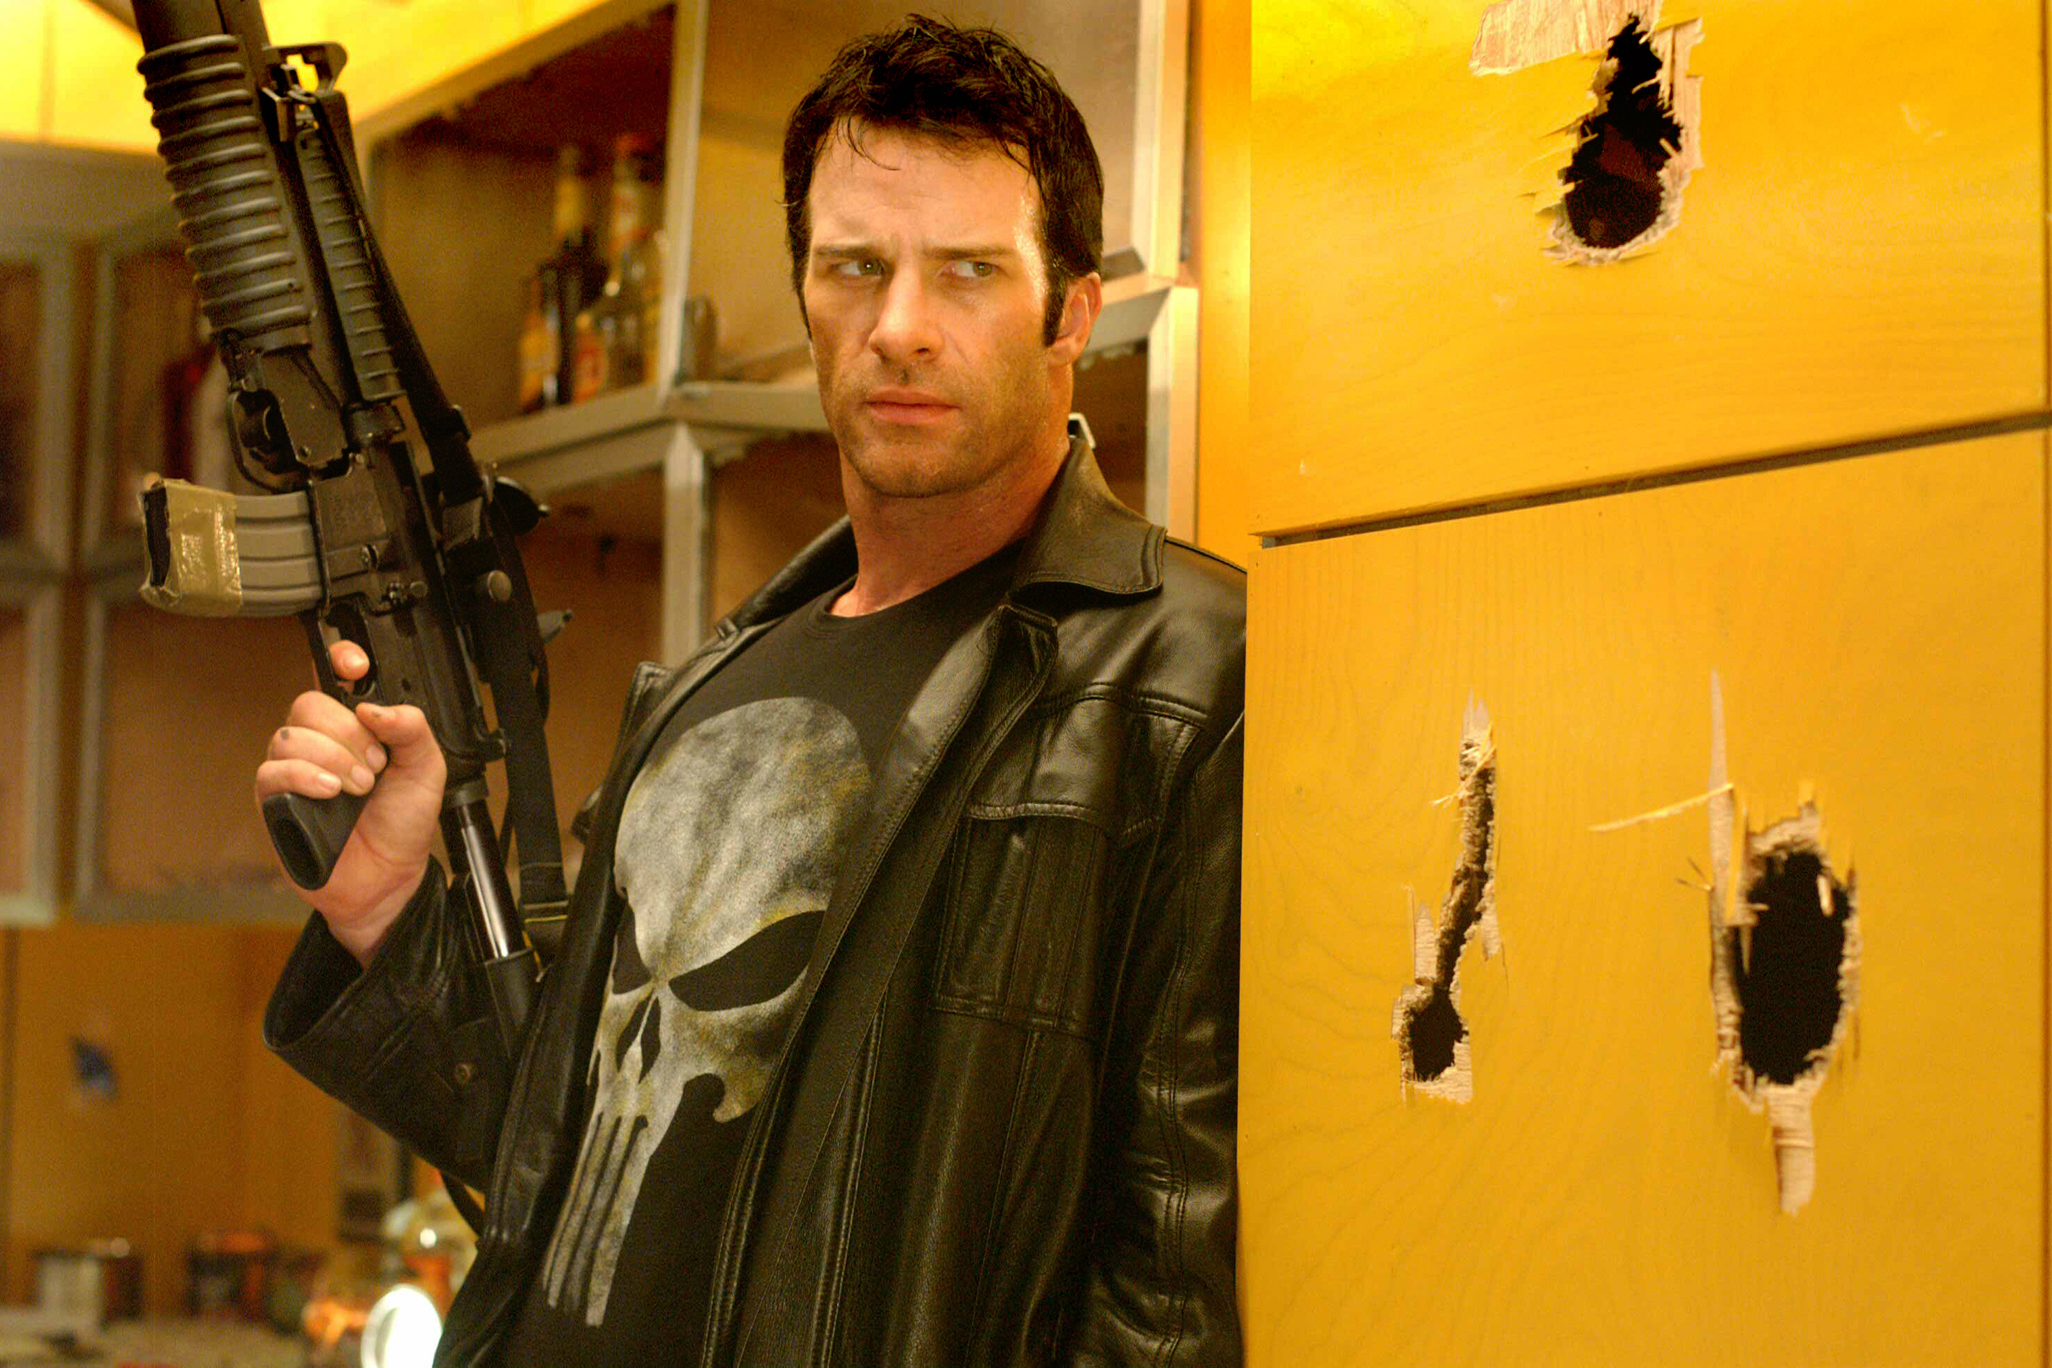 The Punisher (2004); A TV vehicle for the Marvel character (played by Thomas Jane in the movie) is coming to Netflix in 2017, though an exact release date has not yet been announced. It will star Jon Bernthal (not pictured).